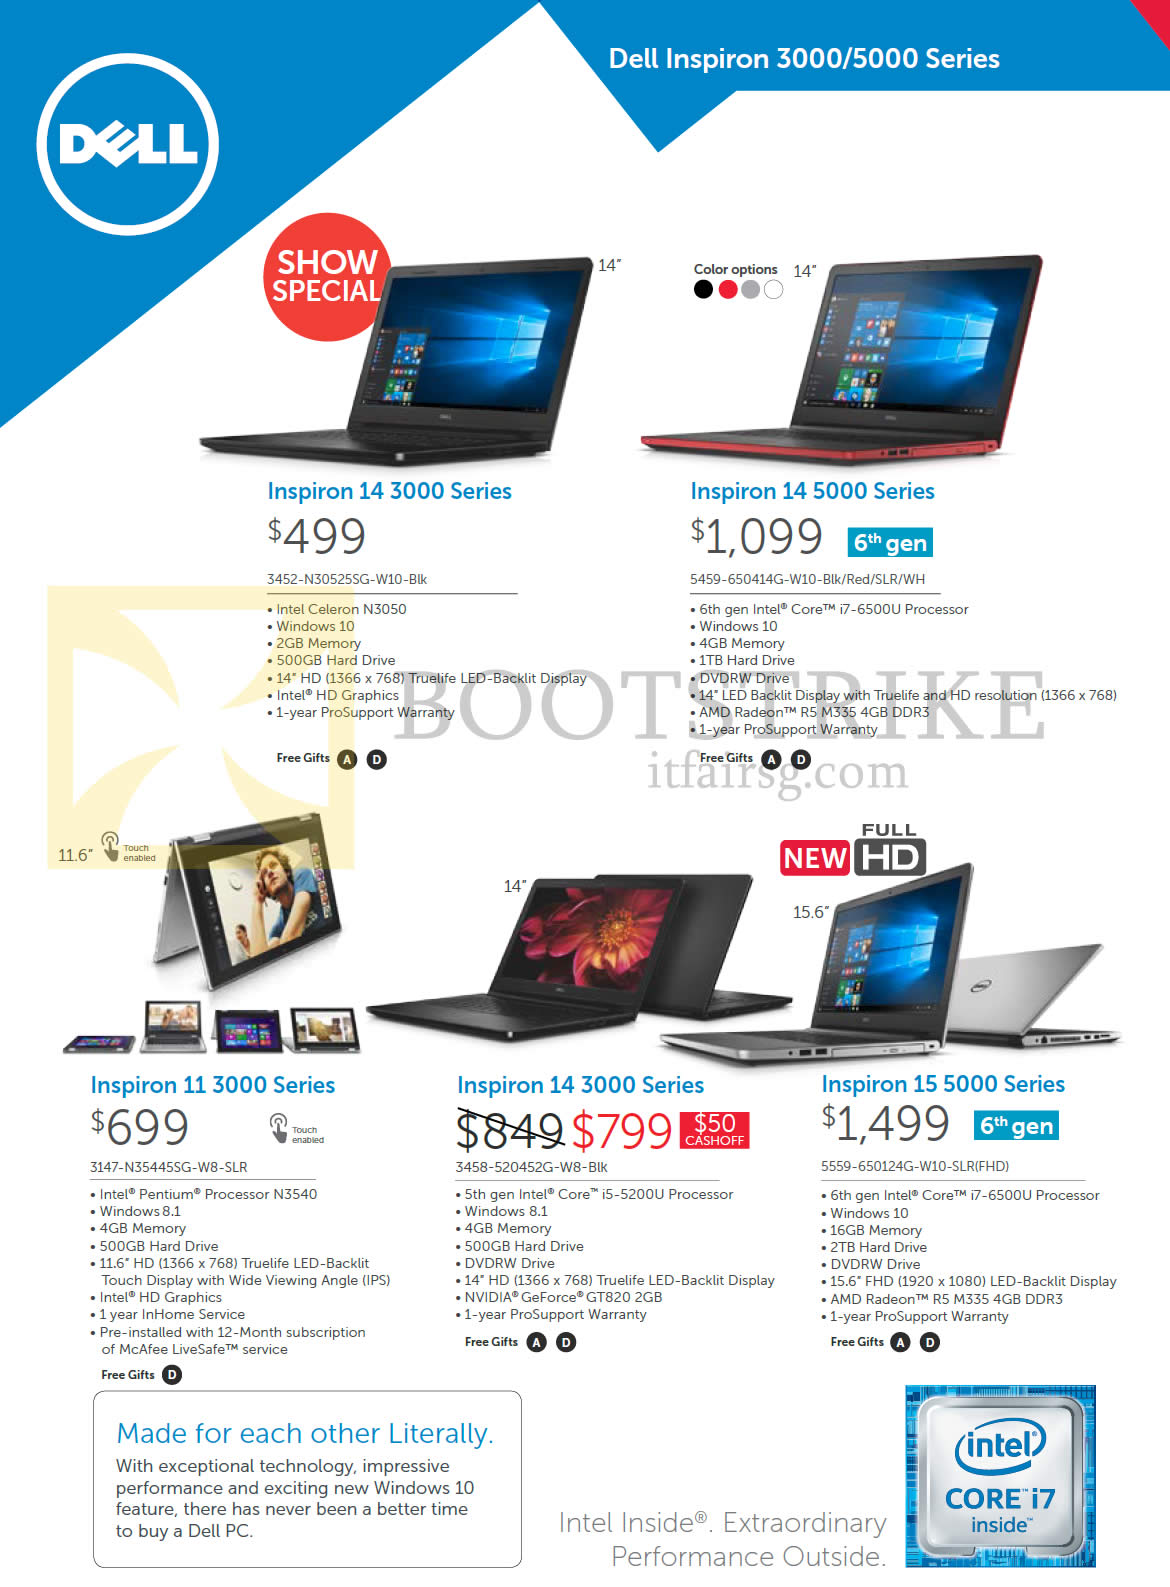 SITEX 2015 price list image brochure of Dell Notebooks Inspiron 3452-N30525SG-W10-Blk, 5459-650414G-W10-Blk, Red, SLR, WH, 3147-N35445SG-W8-SLR, 3458-520452G-W8- Blk, 5559-650124G-W10-SLR